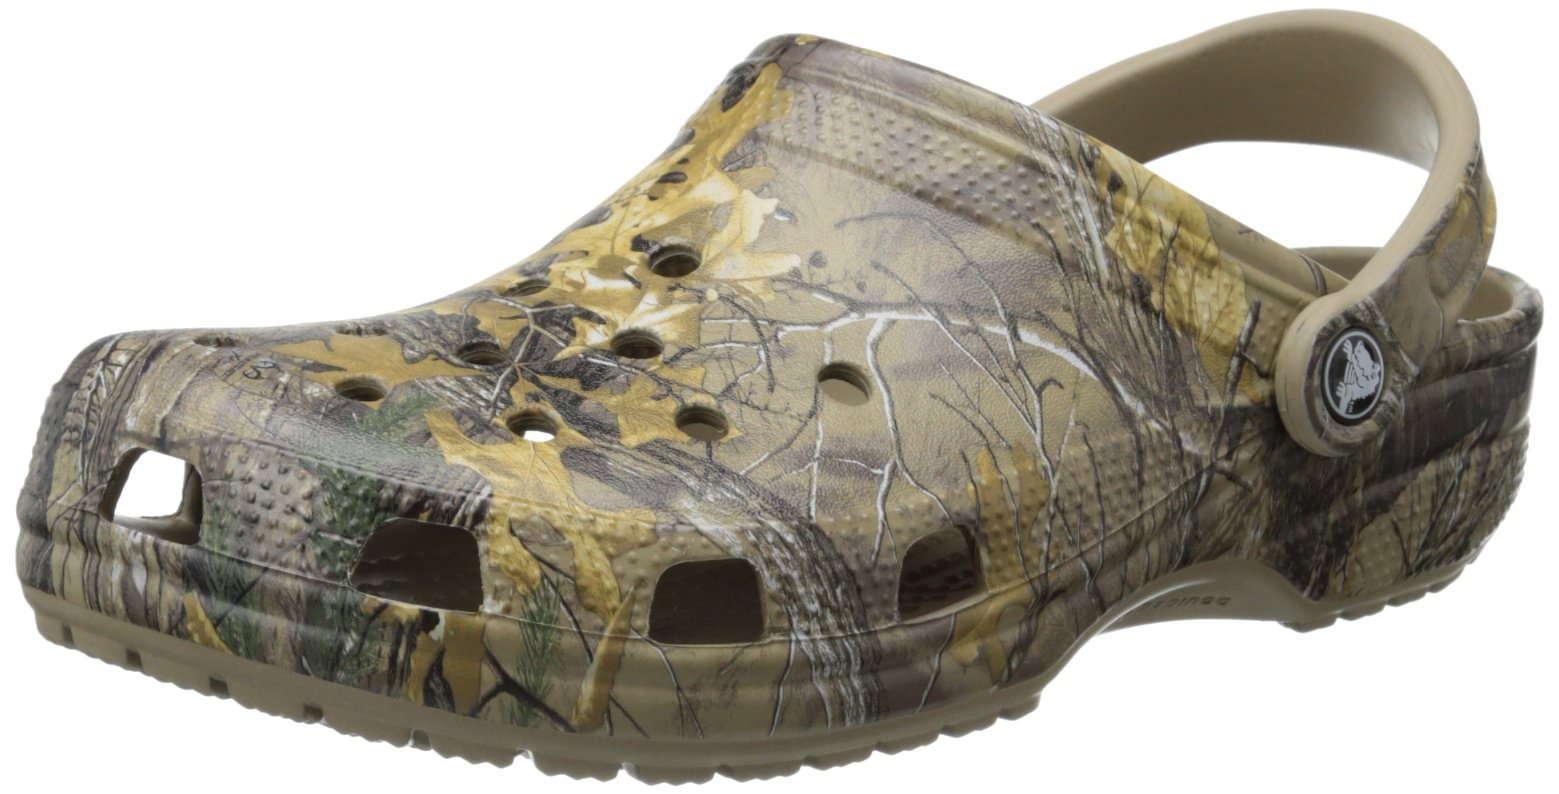 Crocs Men's Classic Realtree Xtra Clog,Khaki,11 M US by Crocs